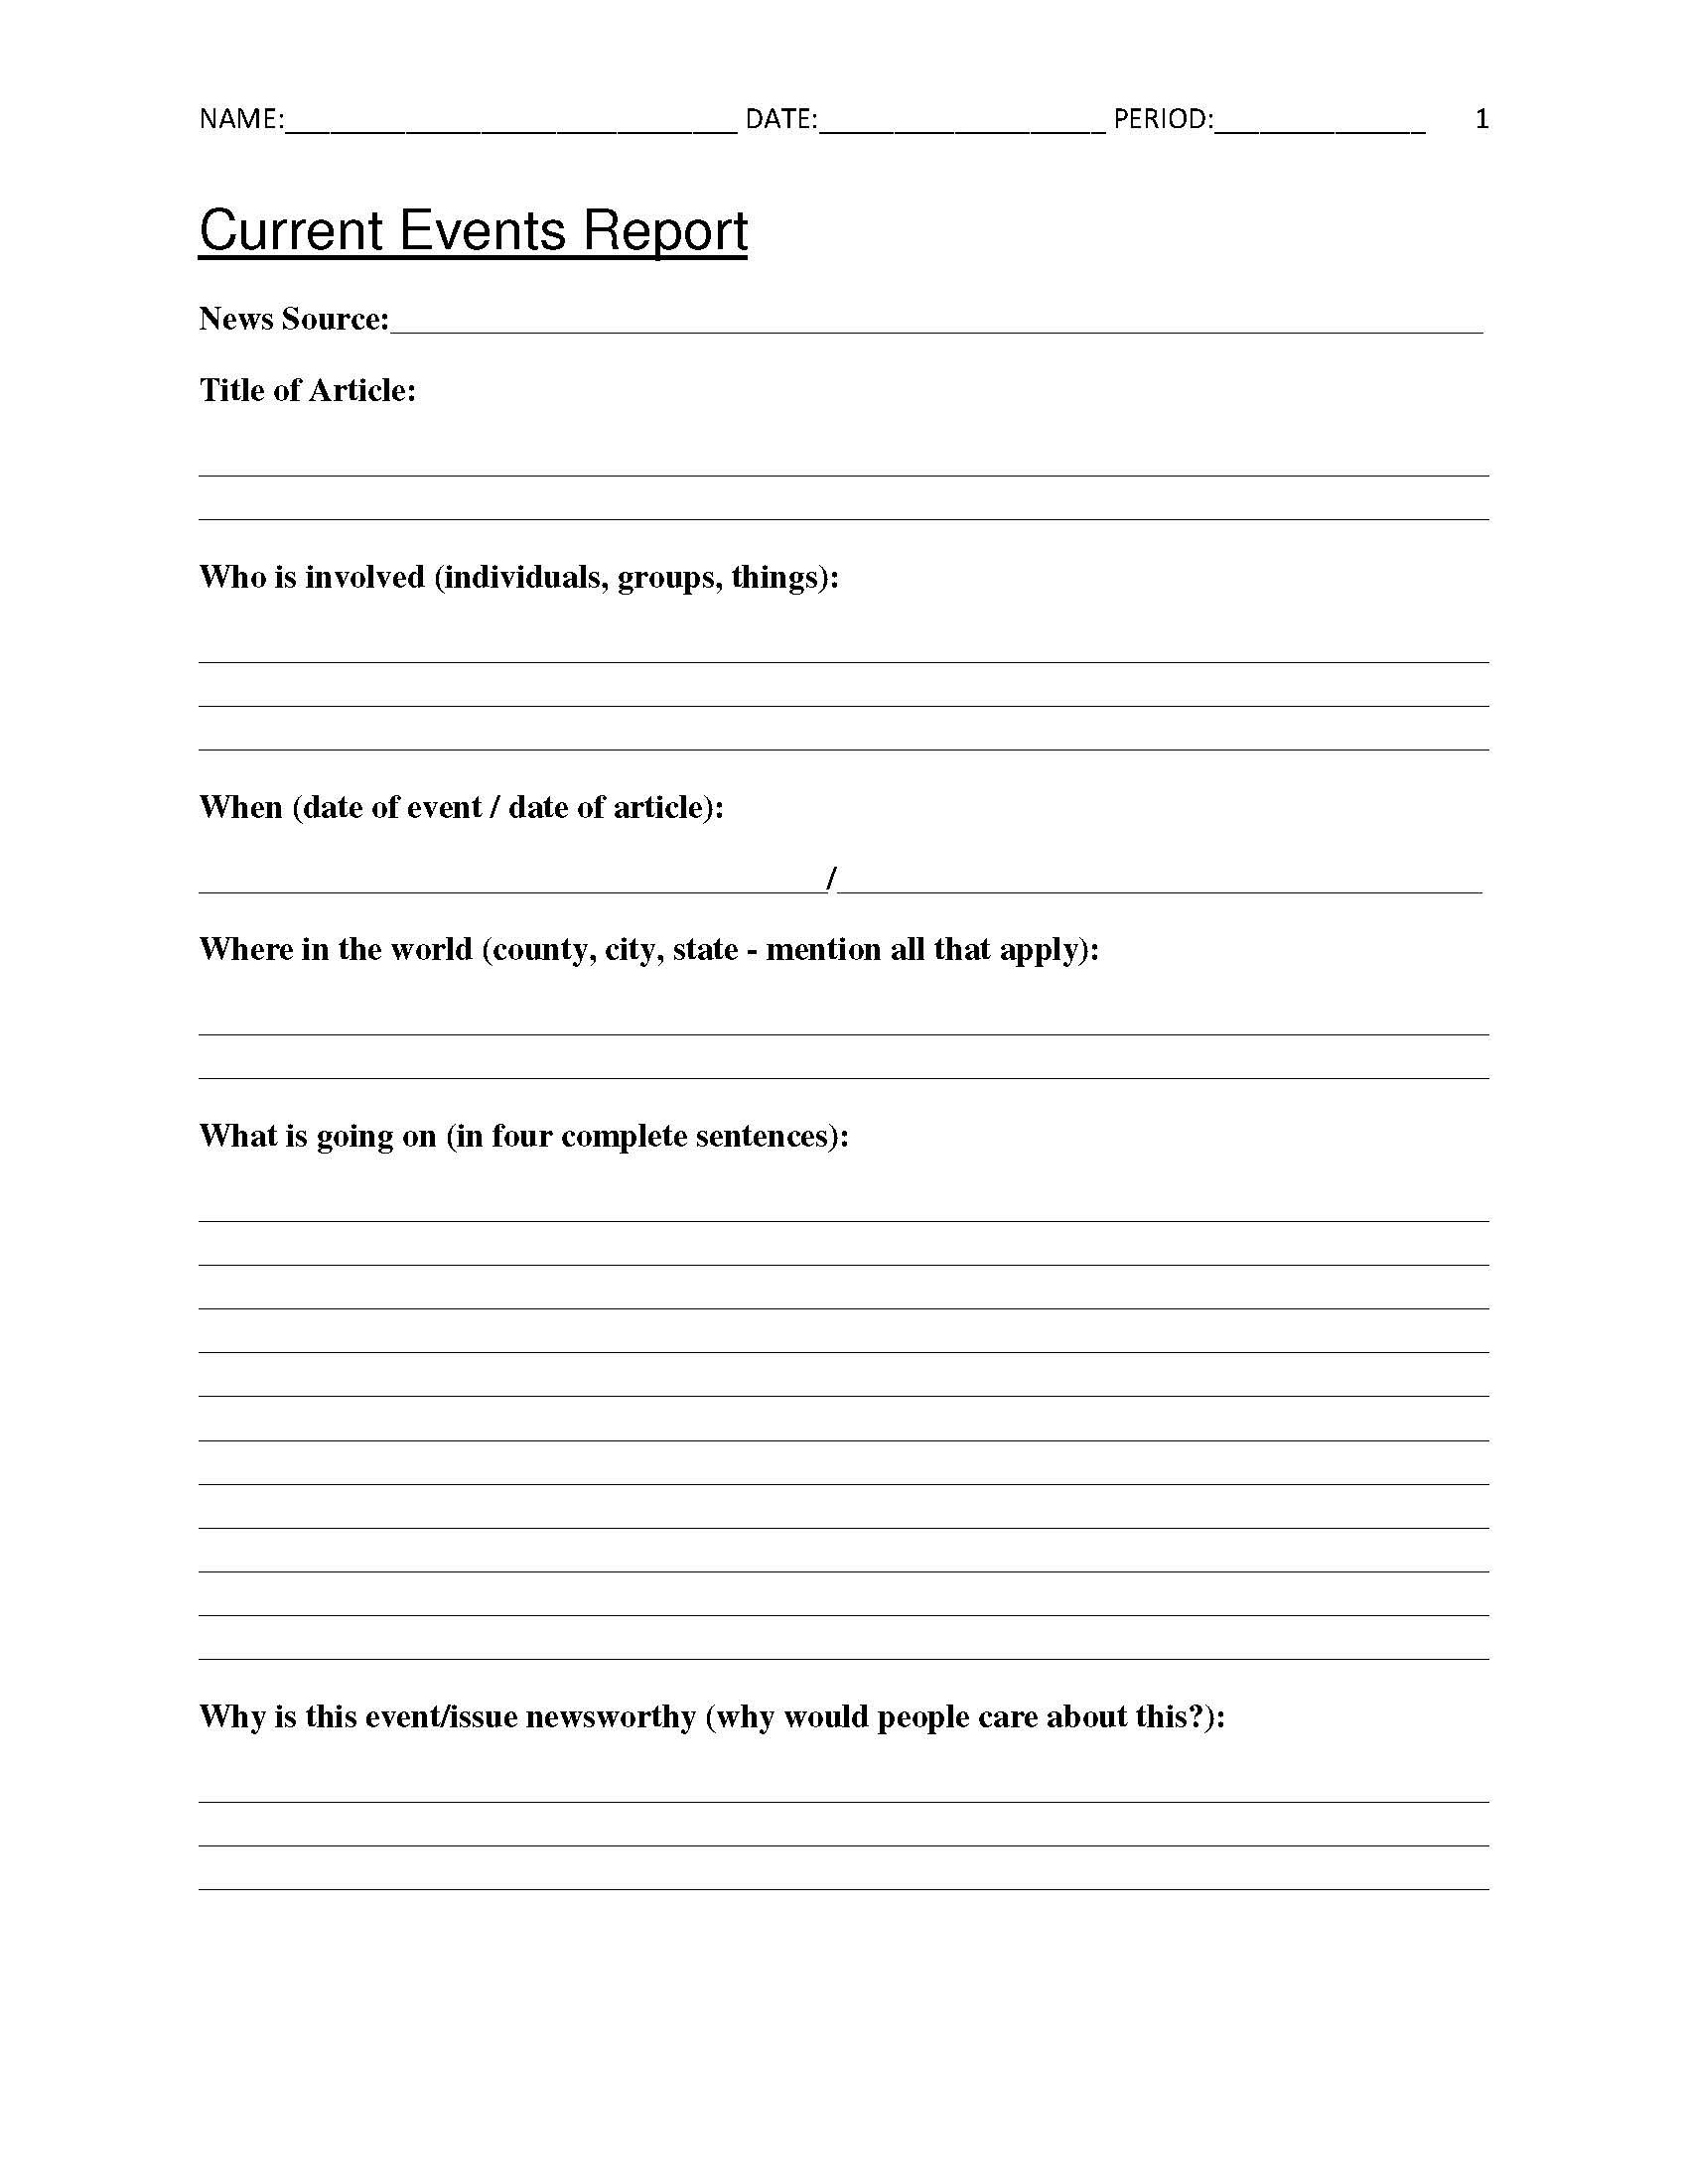 Free Current Events Report Worksheet For Classroom Teachers | Printable Social Studies Worksheets 8Th Grade